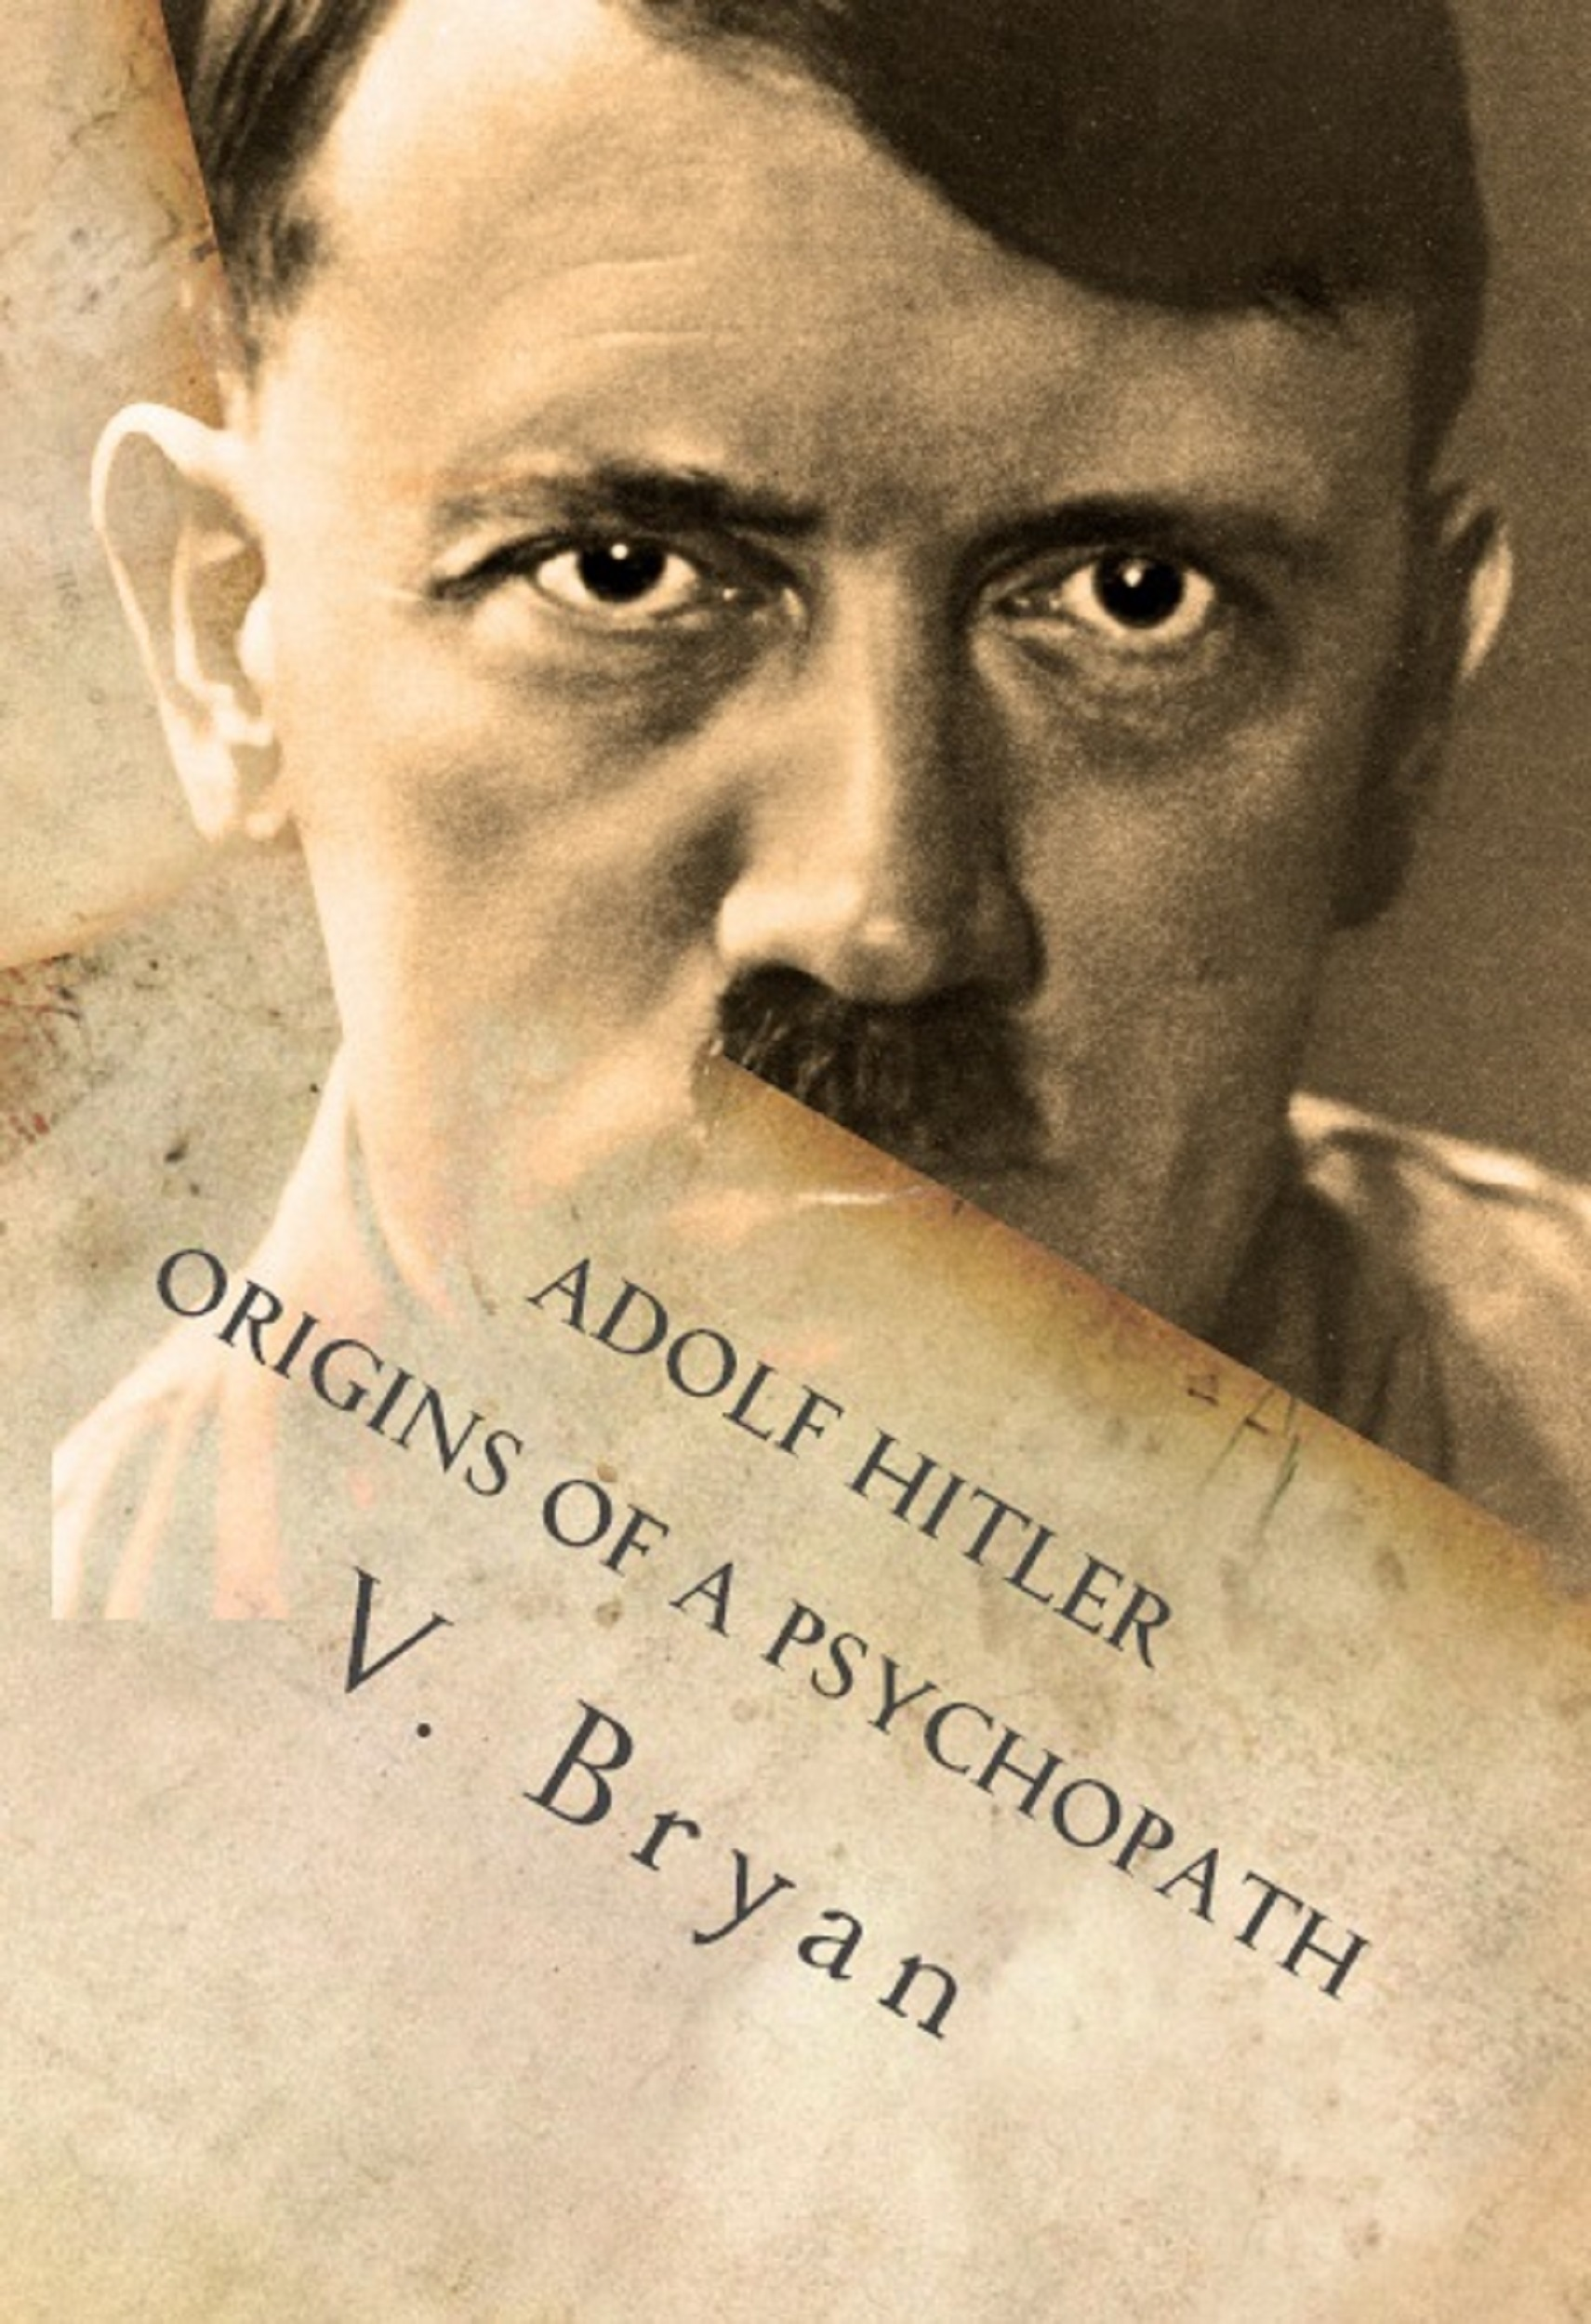 Adolf Hitler Origins of a Psychopath